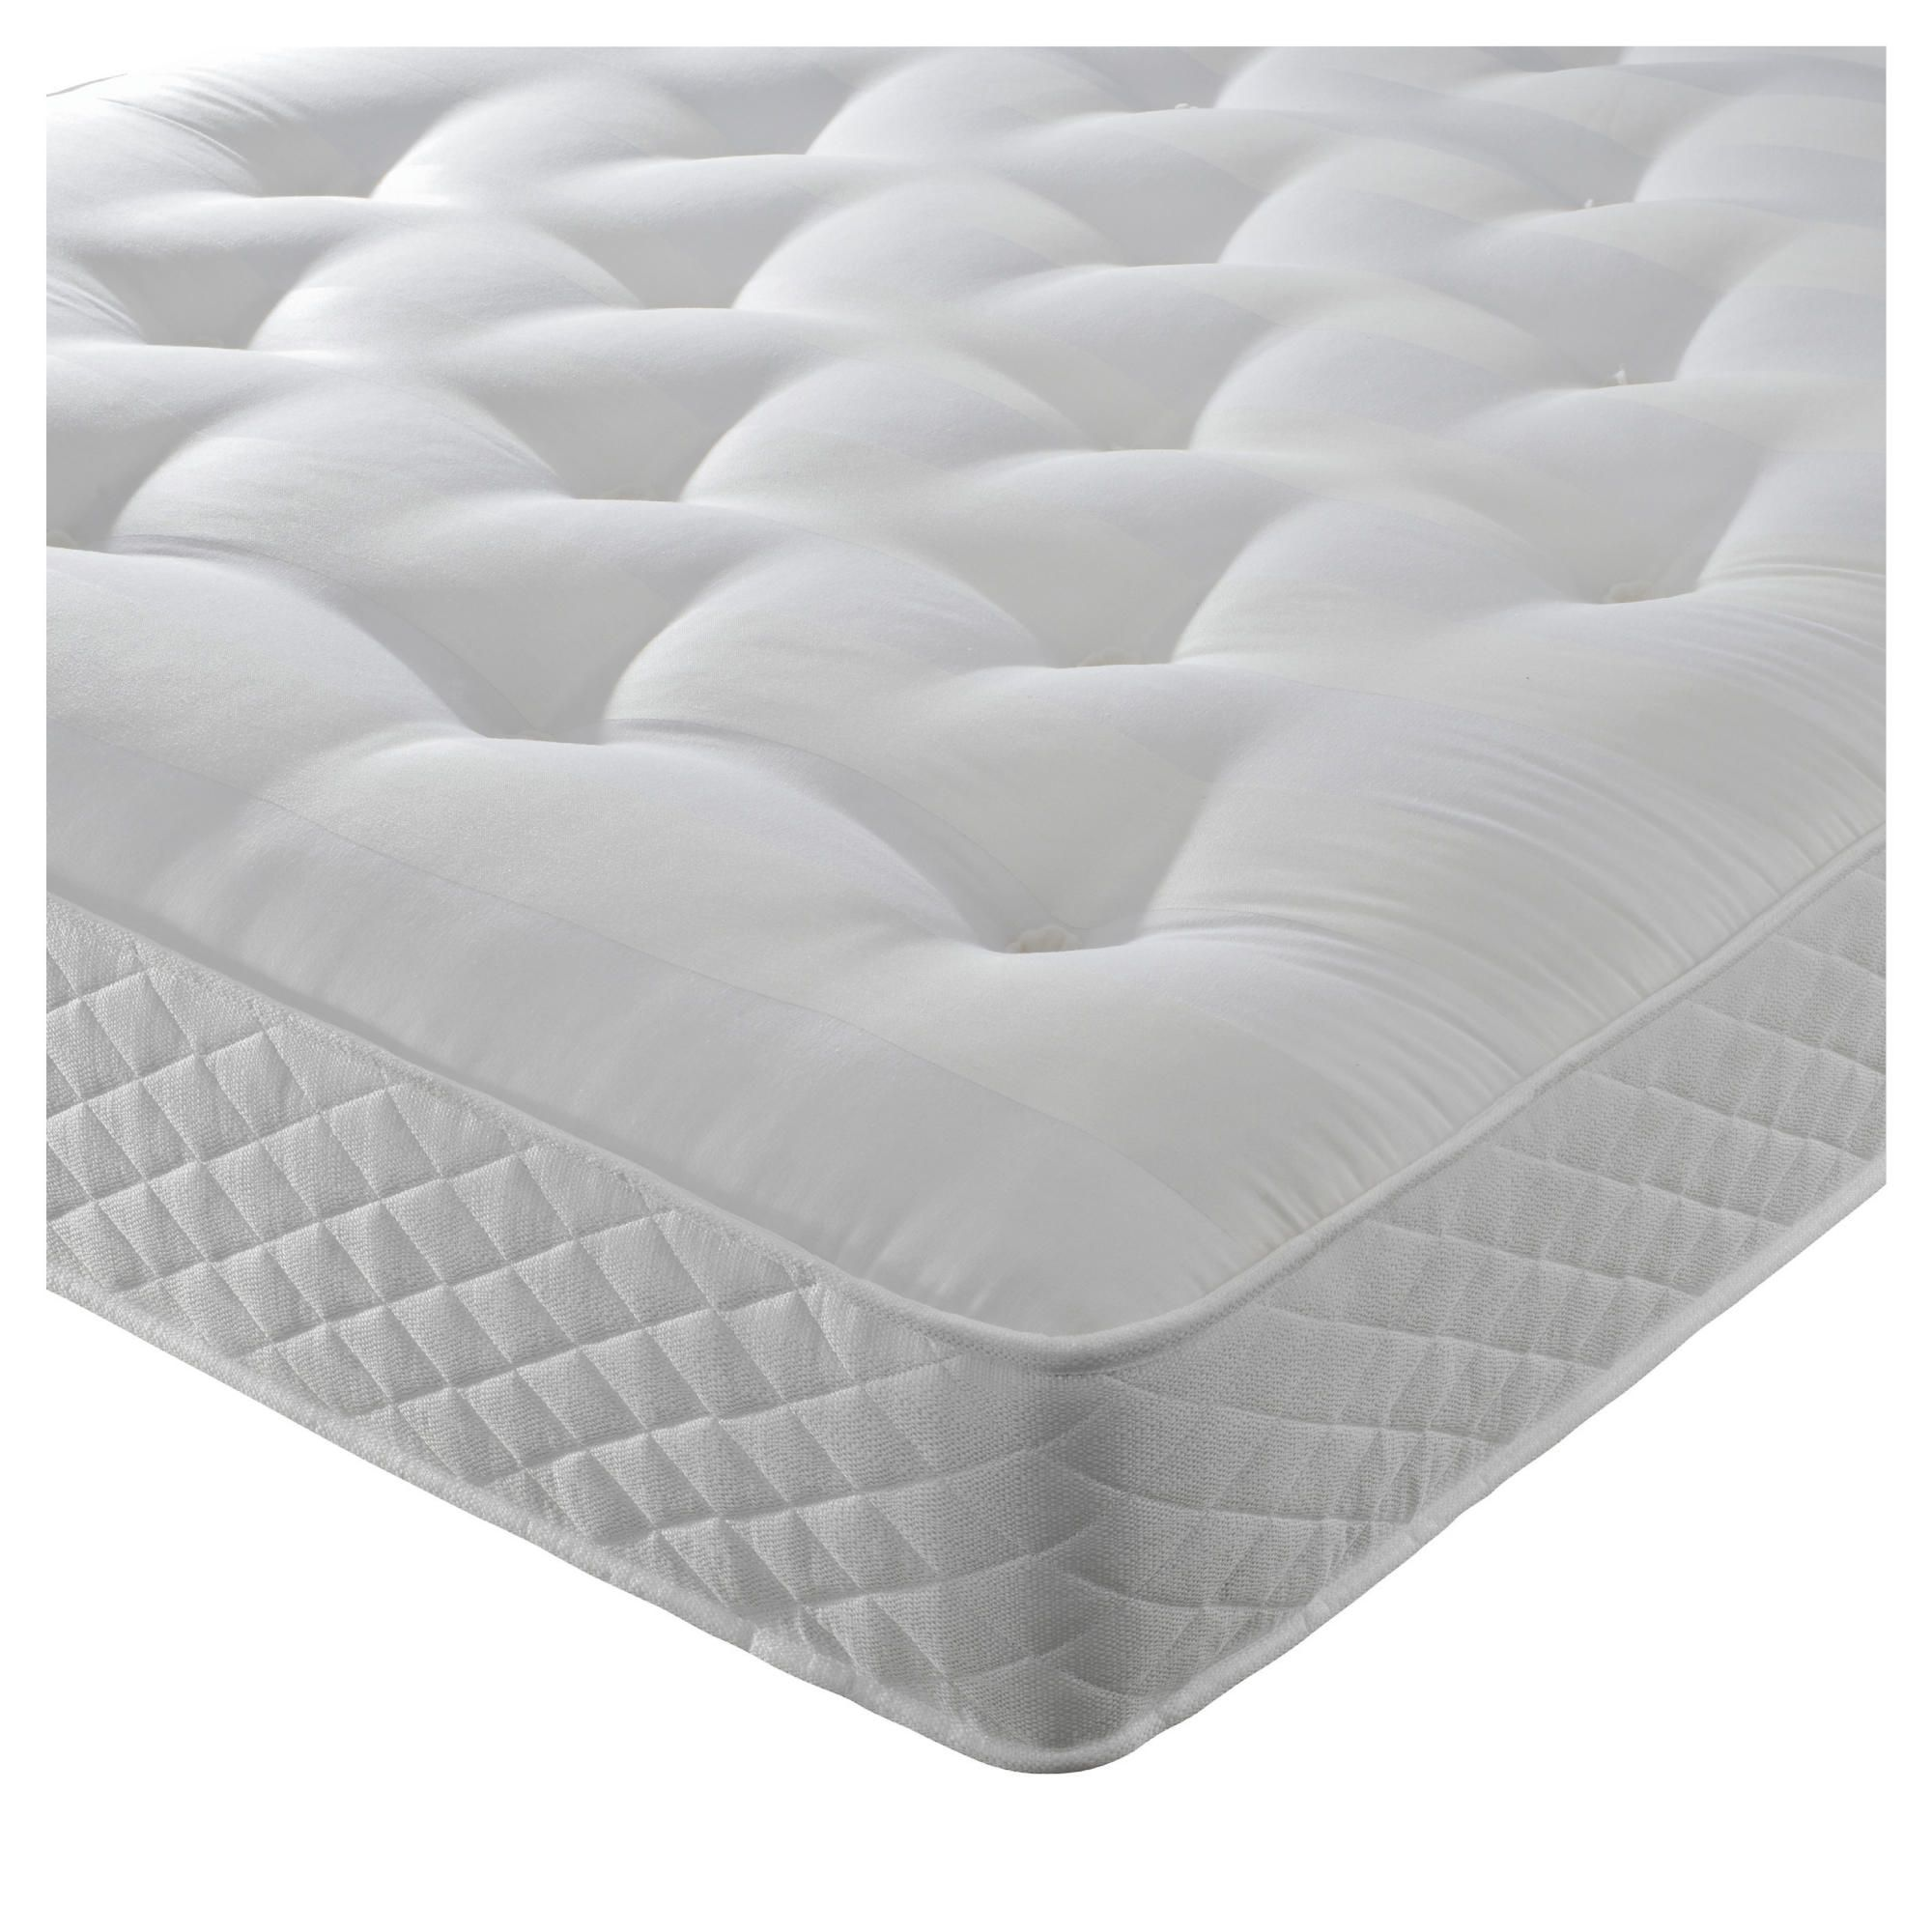 Silentnight Miracoil Luxury Ortho Tuft King Size Mattress at Tesco Direct